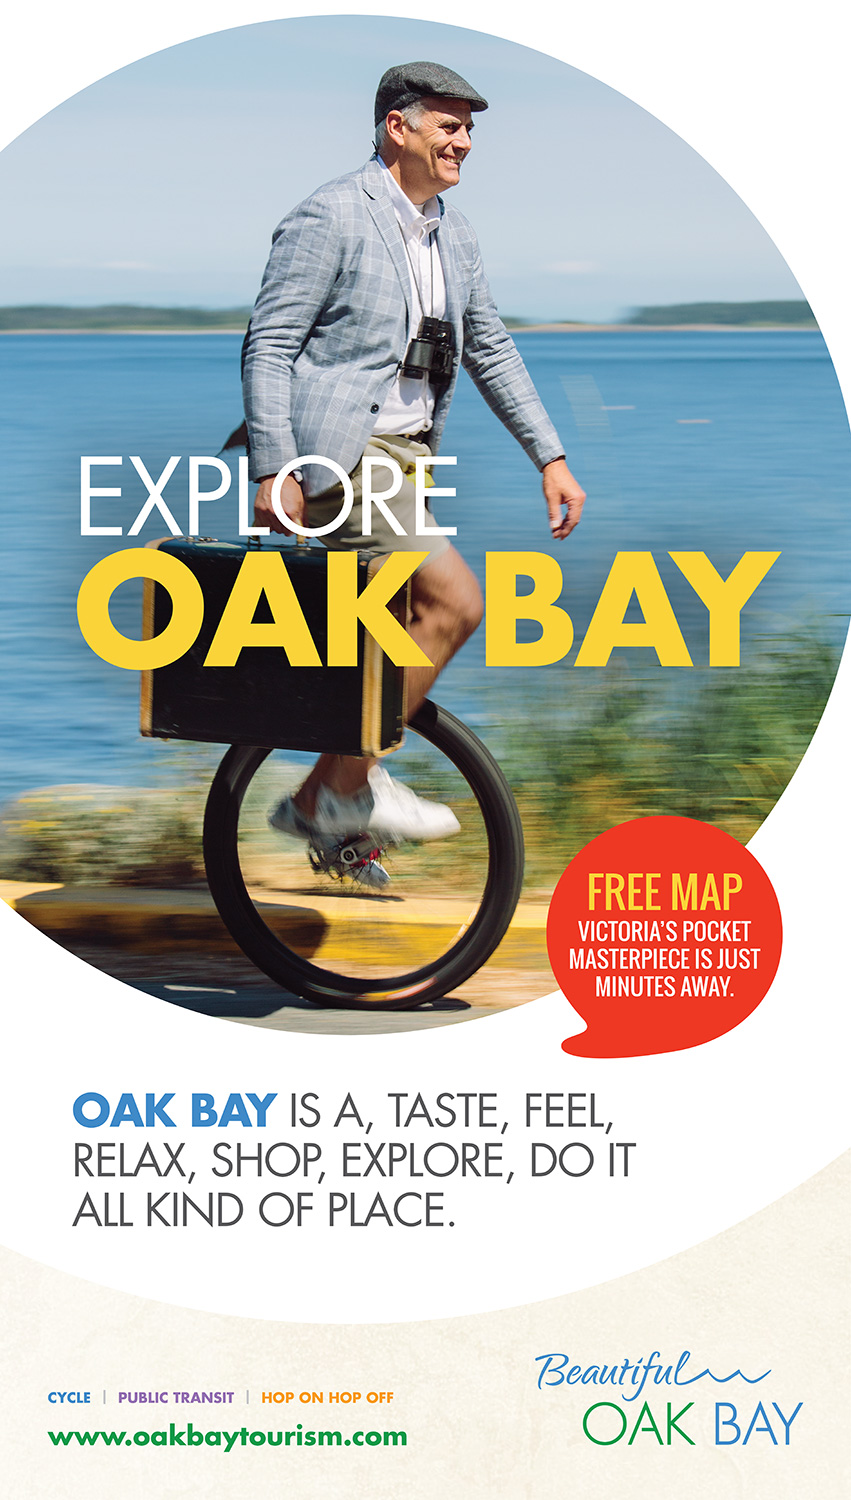 Explore Oak Bay  (credits)